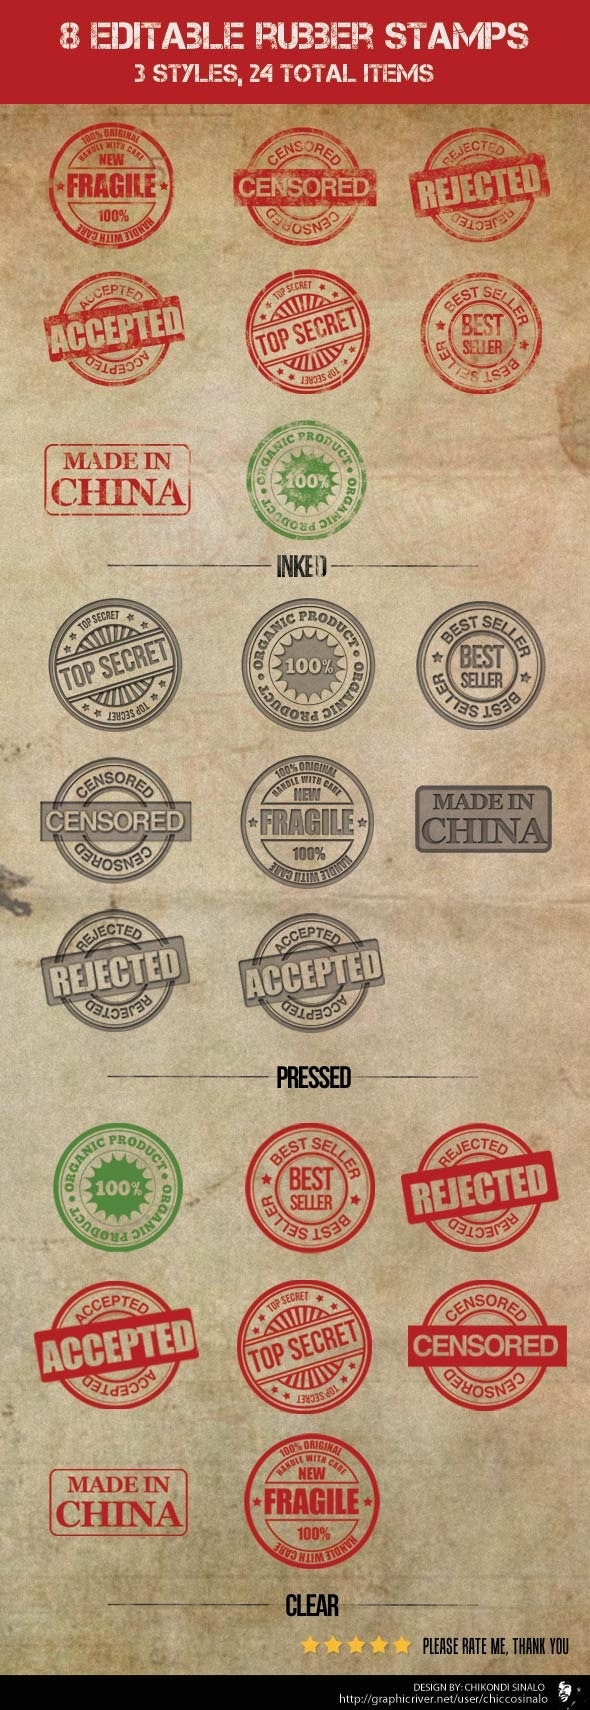 8 Editable Rubber Stamps - Photoshop Add-ons